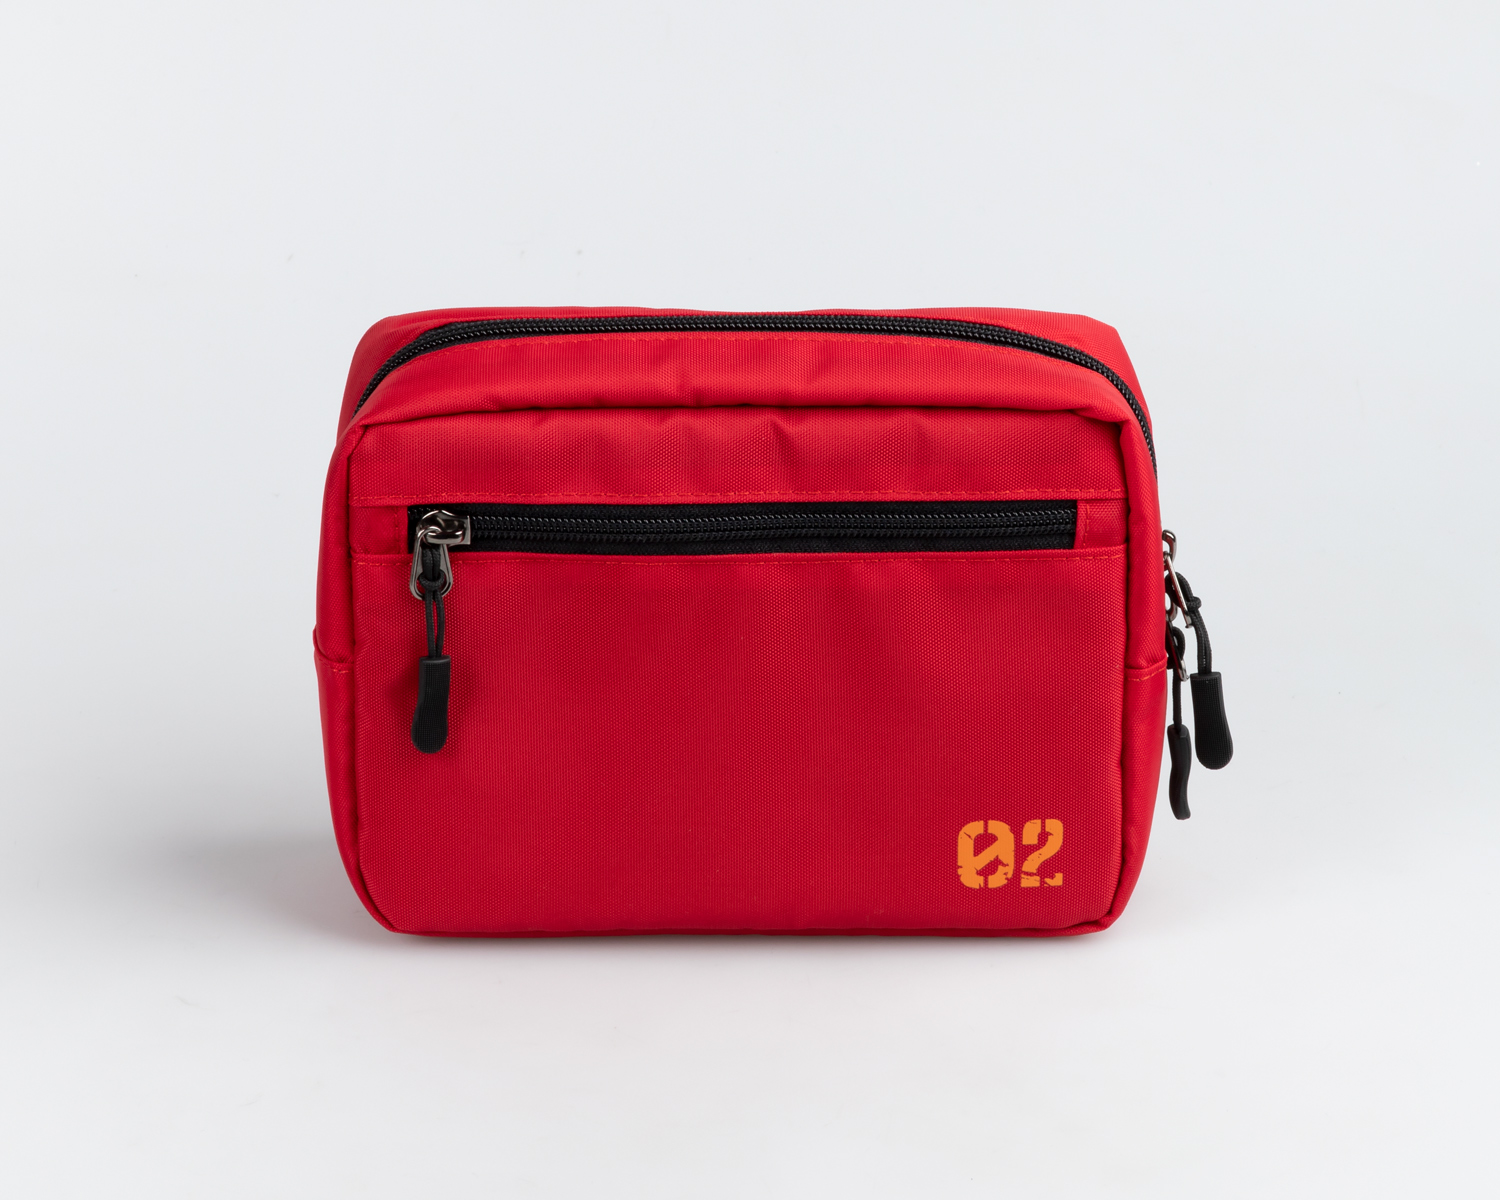 EVANGELION CORE 3WAY BAG in GADGET CASE by FIRE FIRST (EVA-00 MODEL)